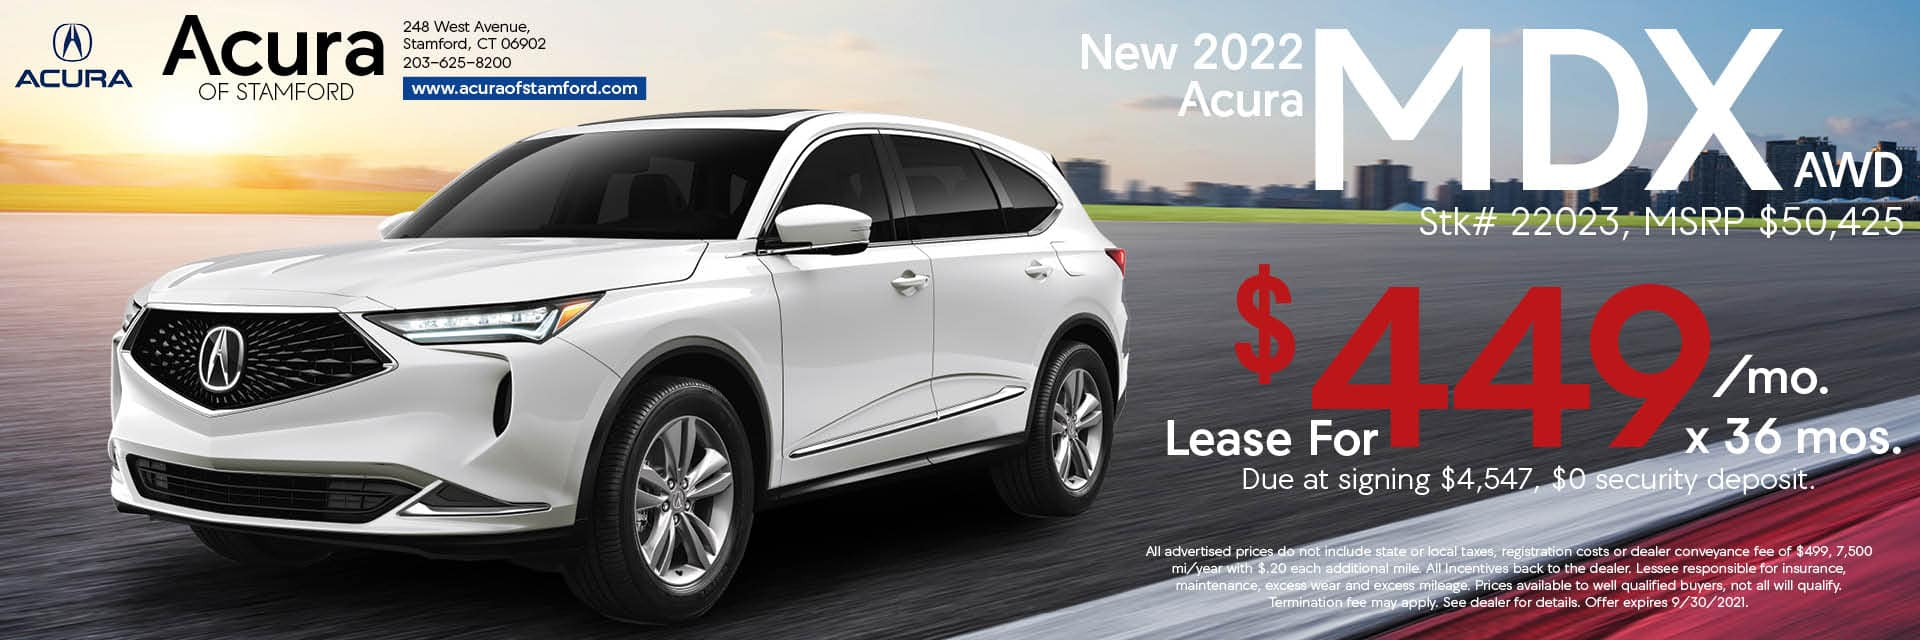 2022 Acura MDX Lease Offer | Acura of Stamford